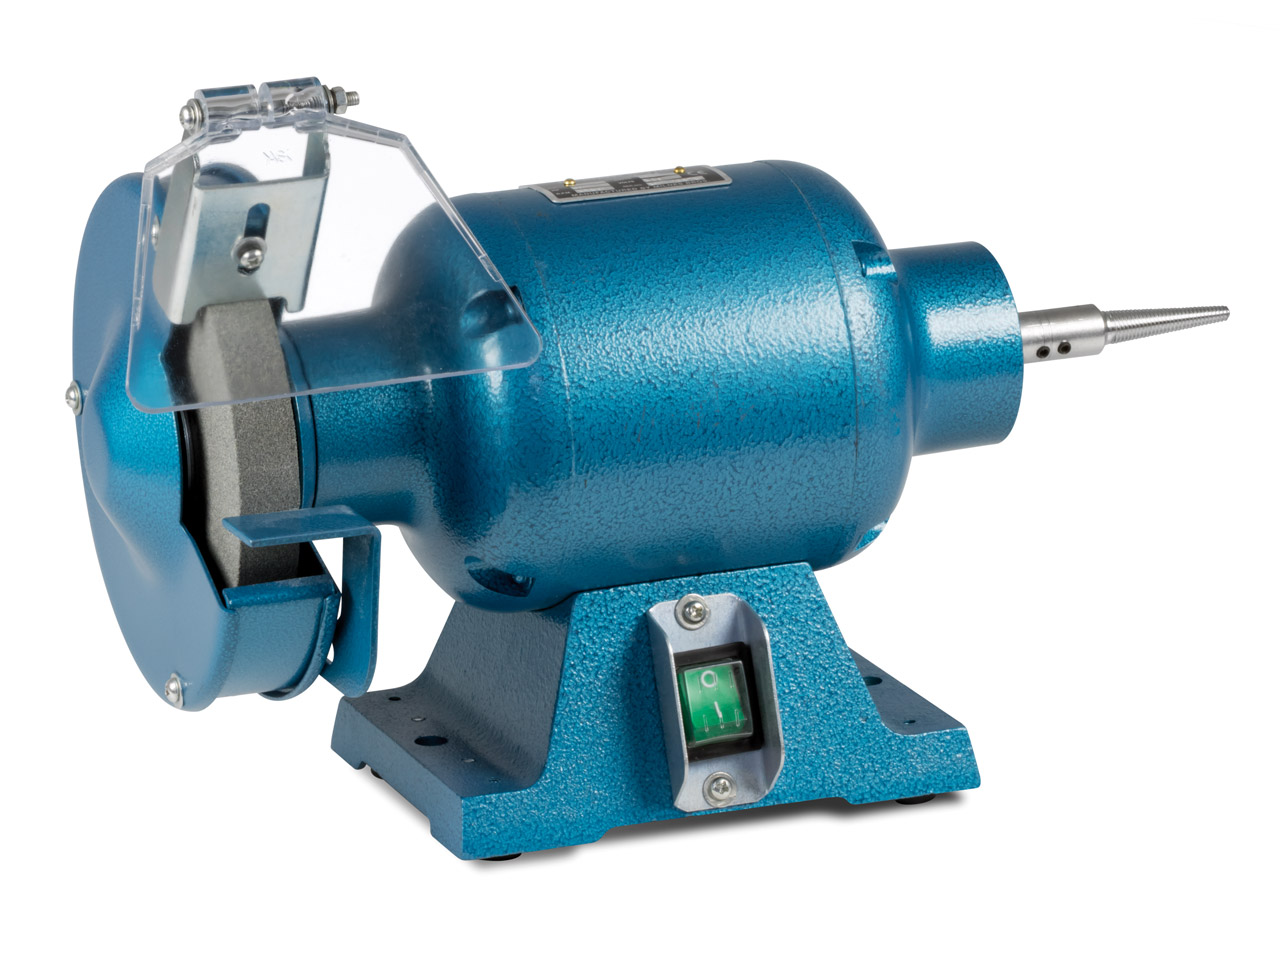 Milbro Polish/grinder Motor 1/2hp, Includes 1 Spindle And Grinding    Wheel